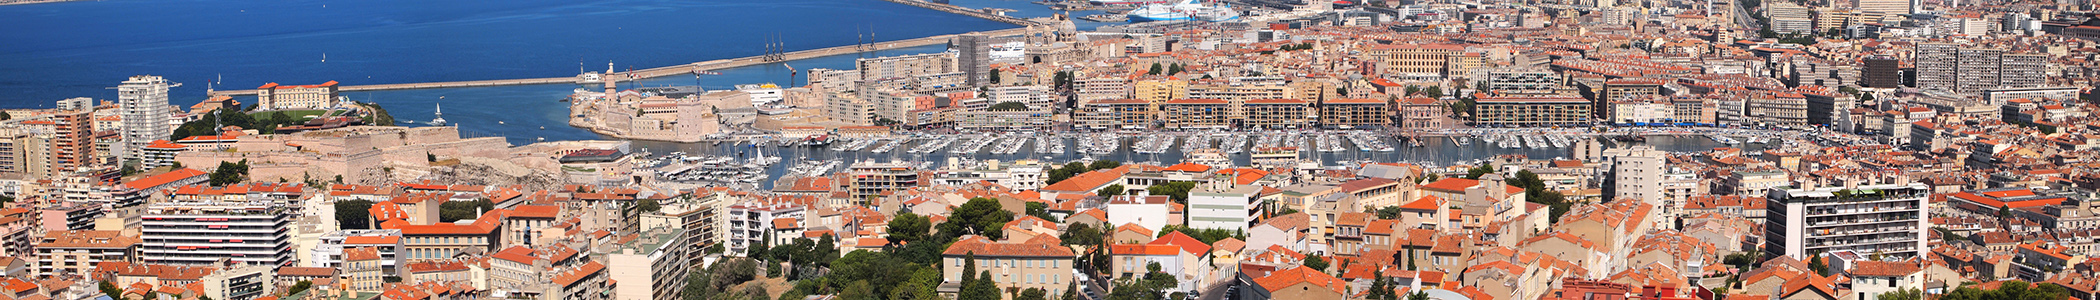 marseille ? travel guide at wikivoyage - Ecole De Cuisine Marseille